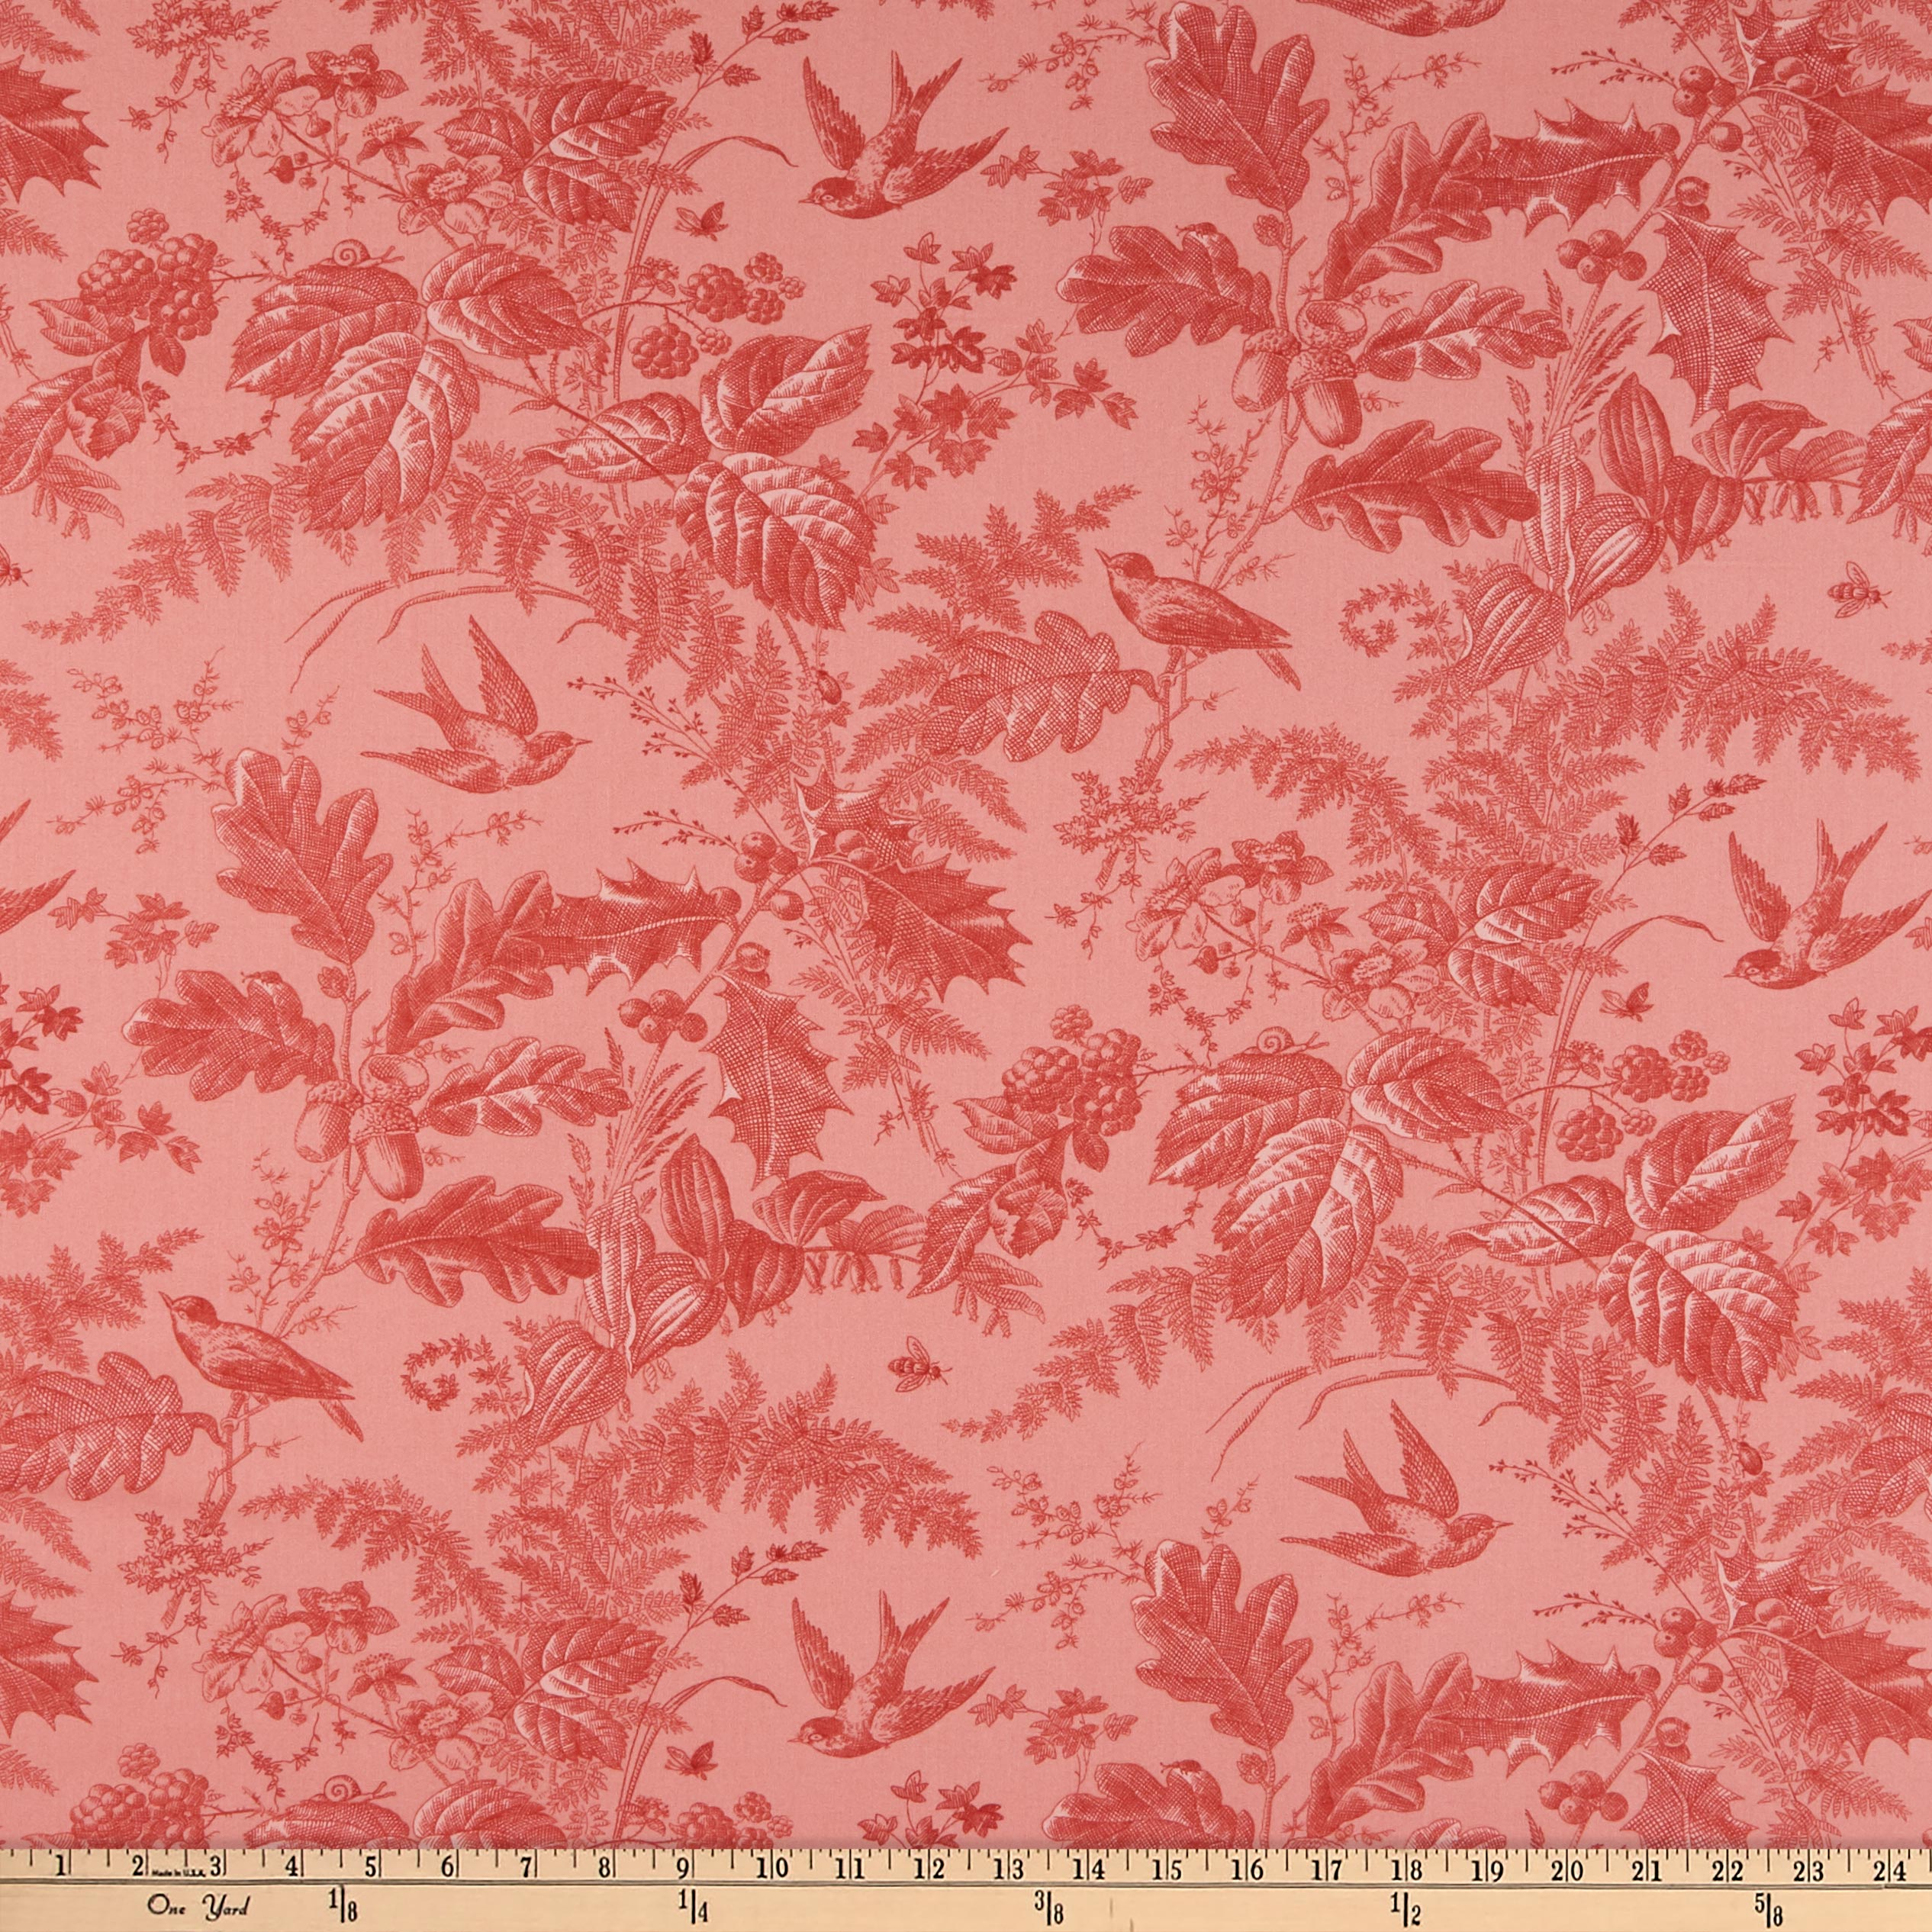 Andover Braveheart Toile Rose Fabric